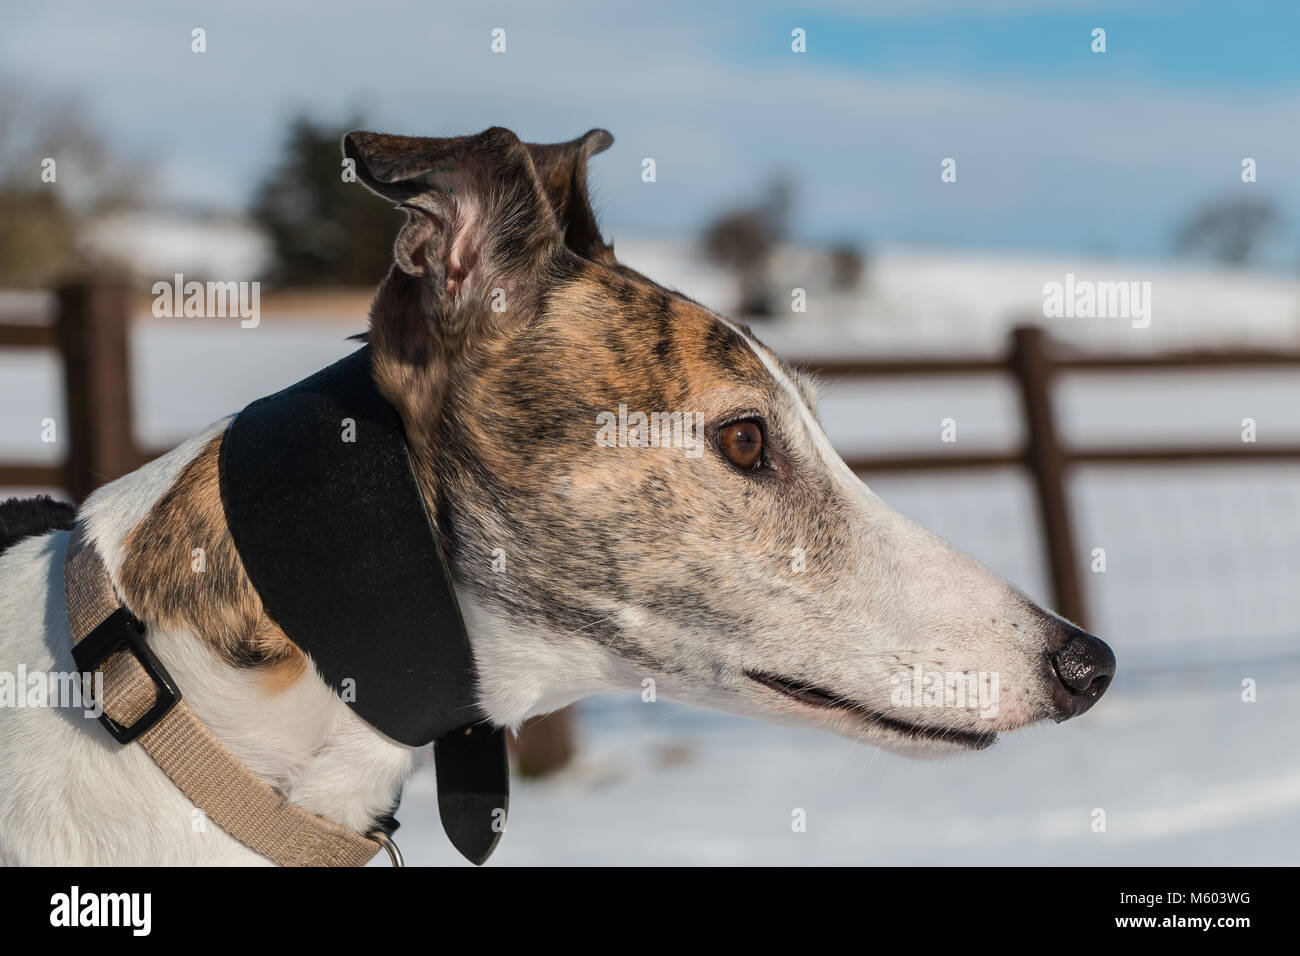 Portrait of a beautiful brindle and white ex-racing (retired) greyhound in sunshine against a snowy background - Stock Image